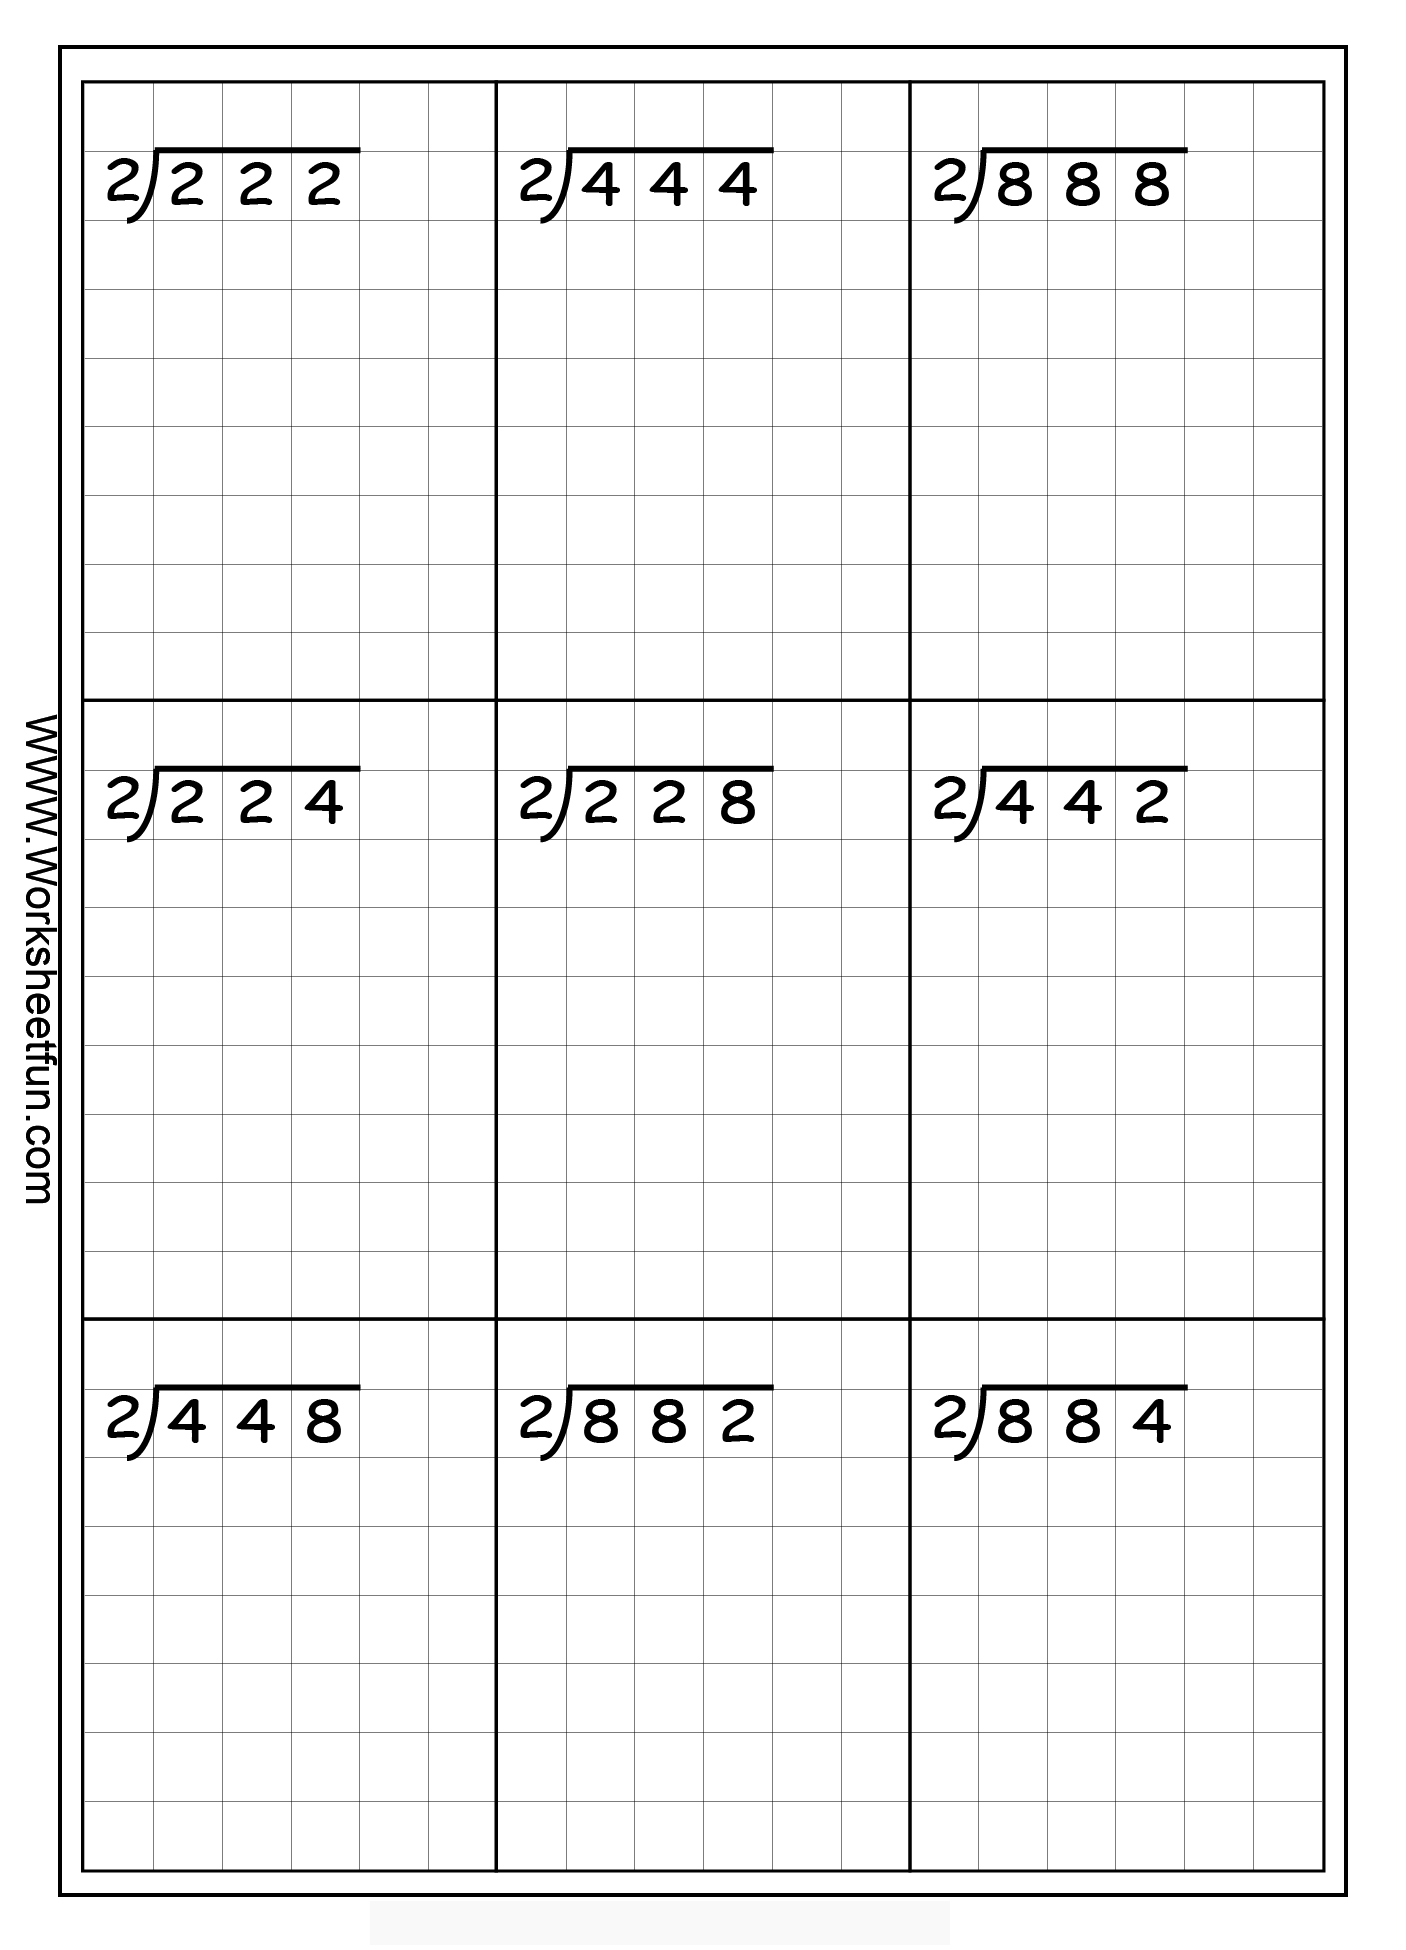 Division Worksheet 3 Digit By 1